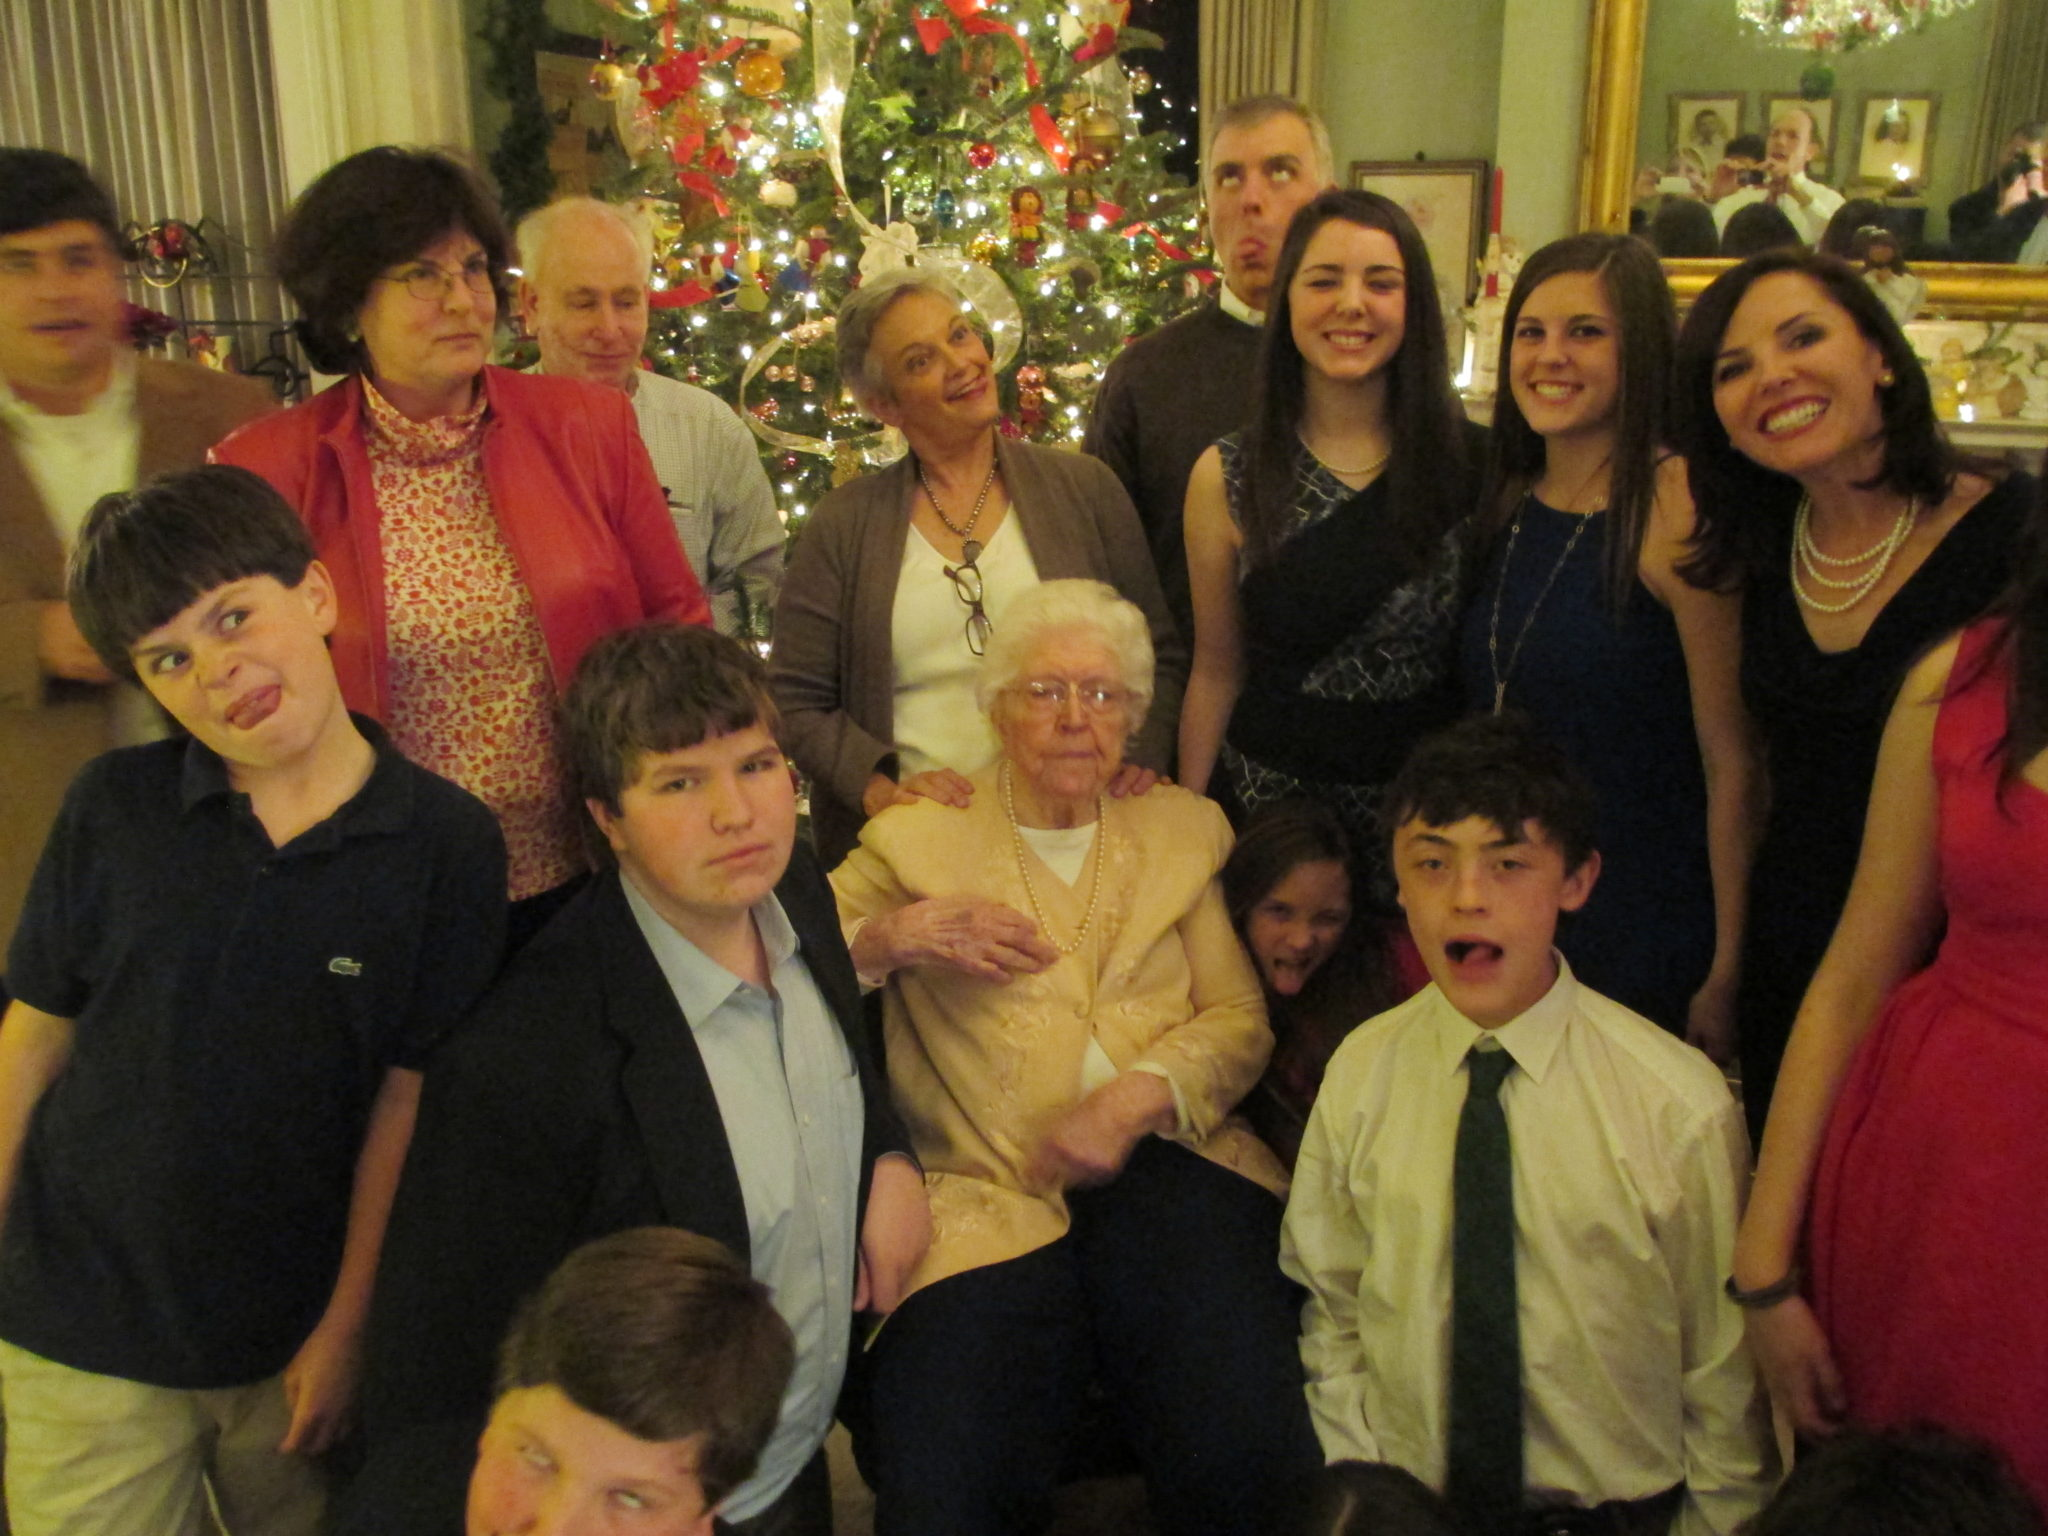 My mom who is now 102 surrounded by family.